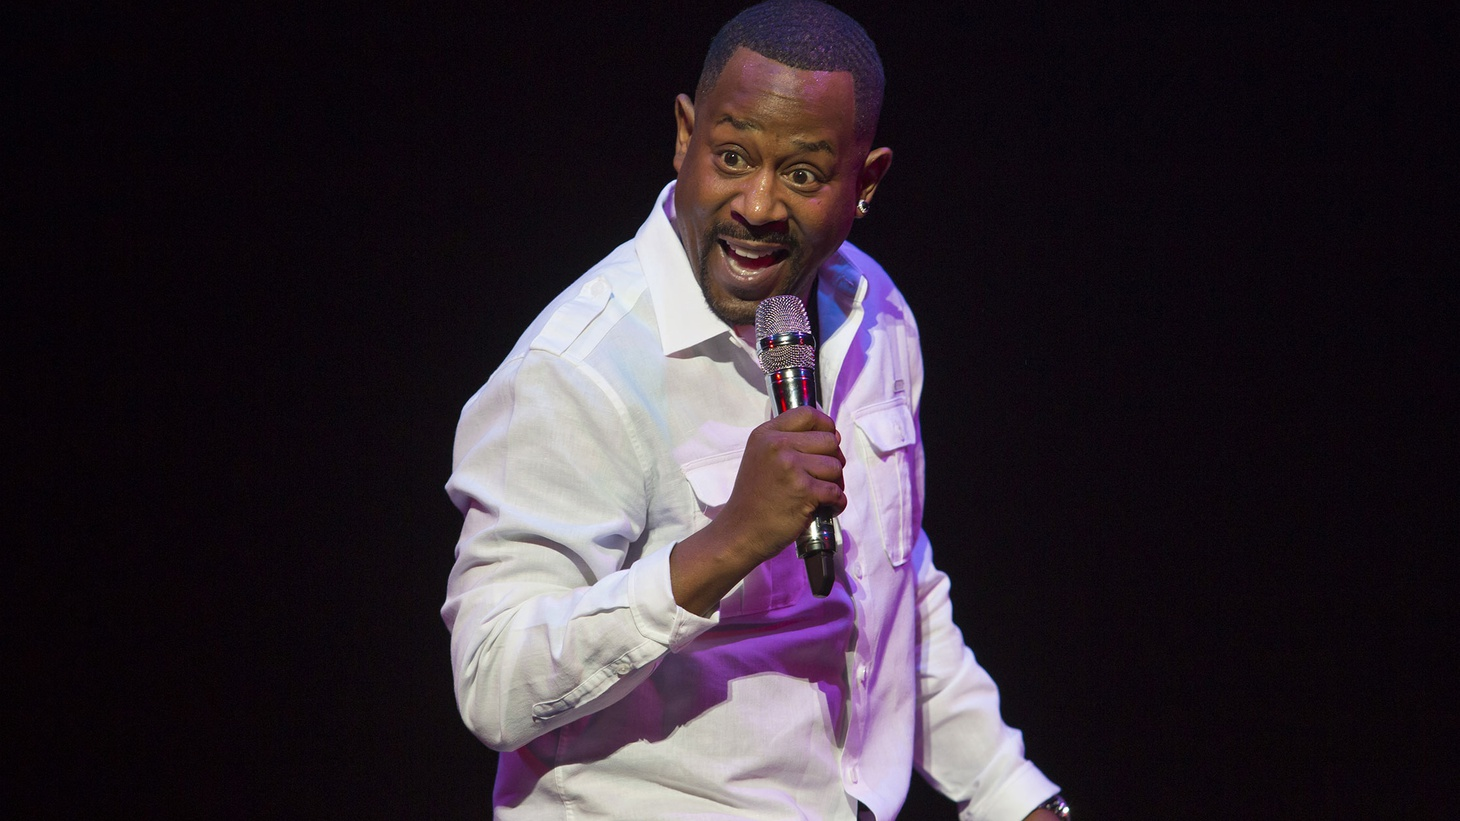 Comedian and actor Martin Lawrence joins Elvis Mitchell to discuss getting back on stage after 14 years in his new stand-up special Doin' Time: Uncut.